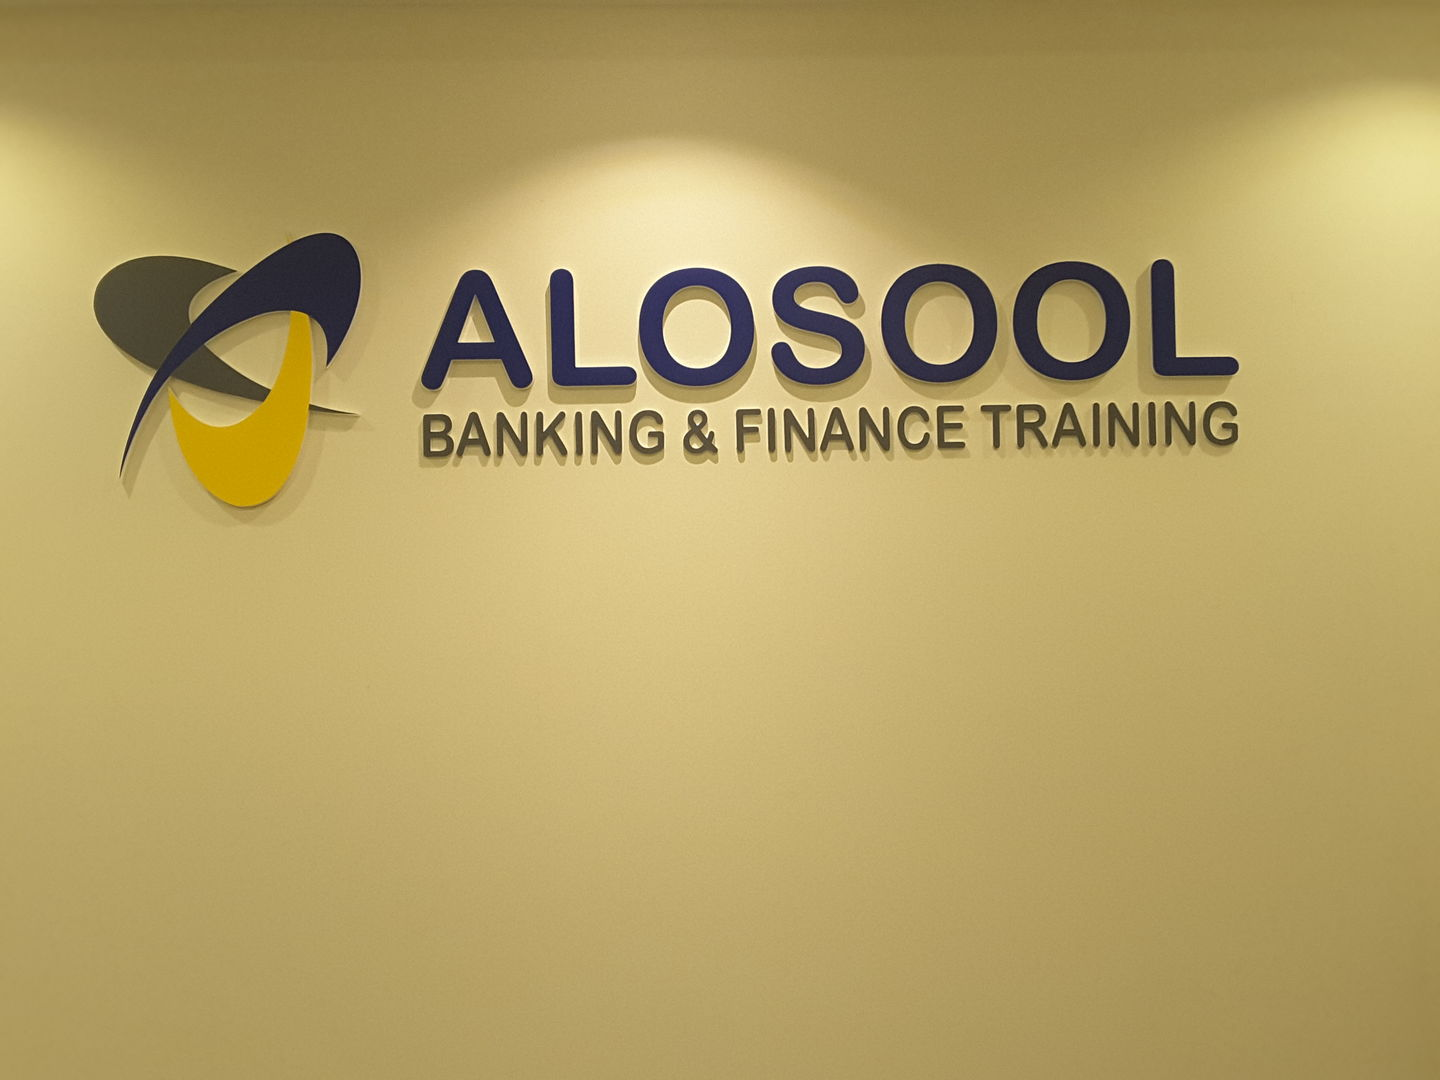 HiDubai-business-alosool-banking-finance-training-education-training-learning-centres-dubai-media-city-al-sufouh-2-dubai-2